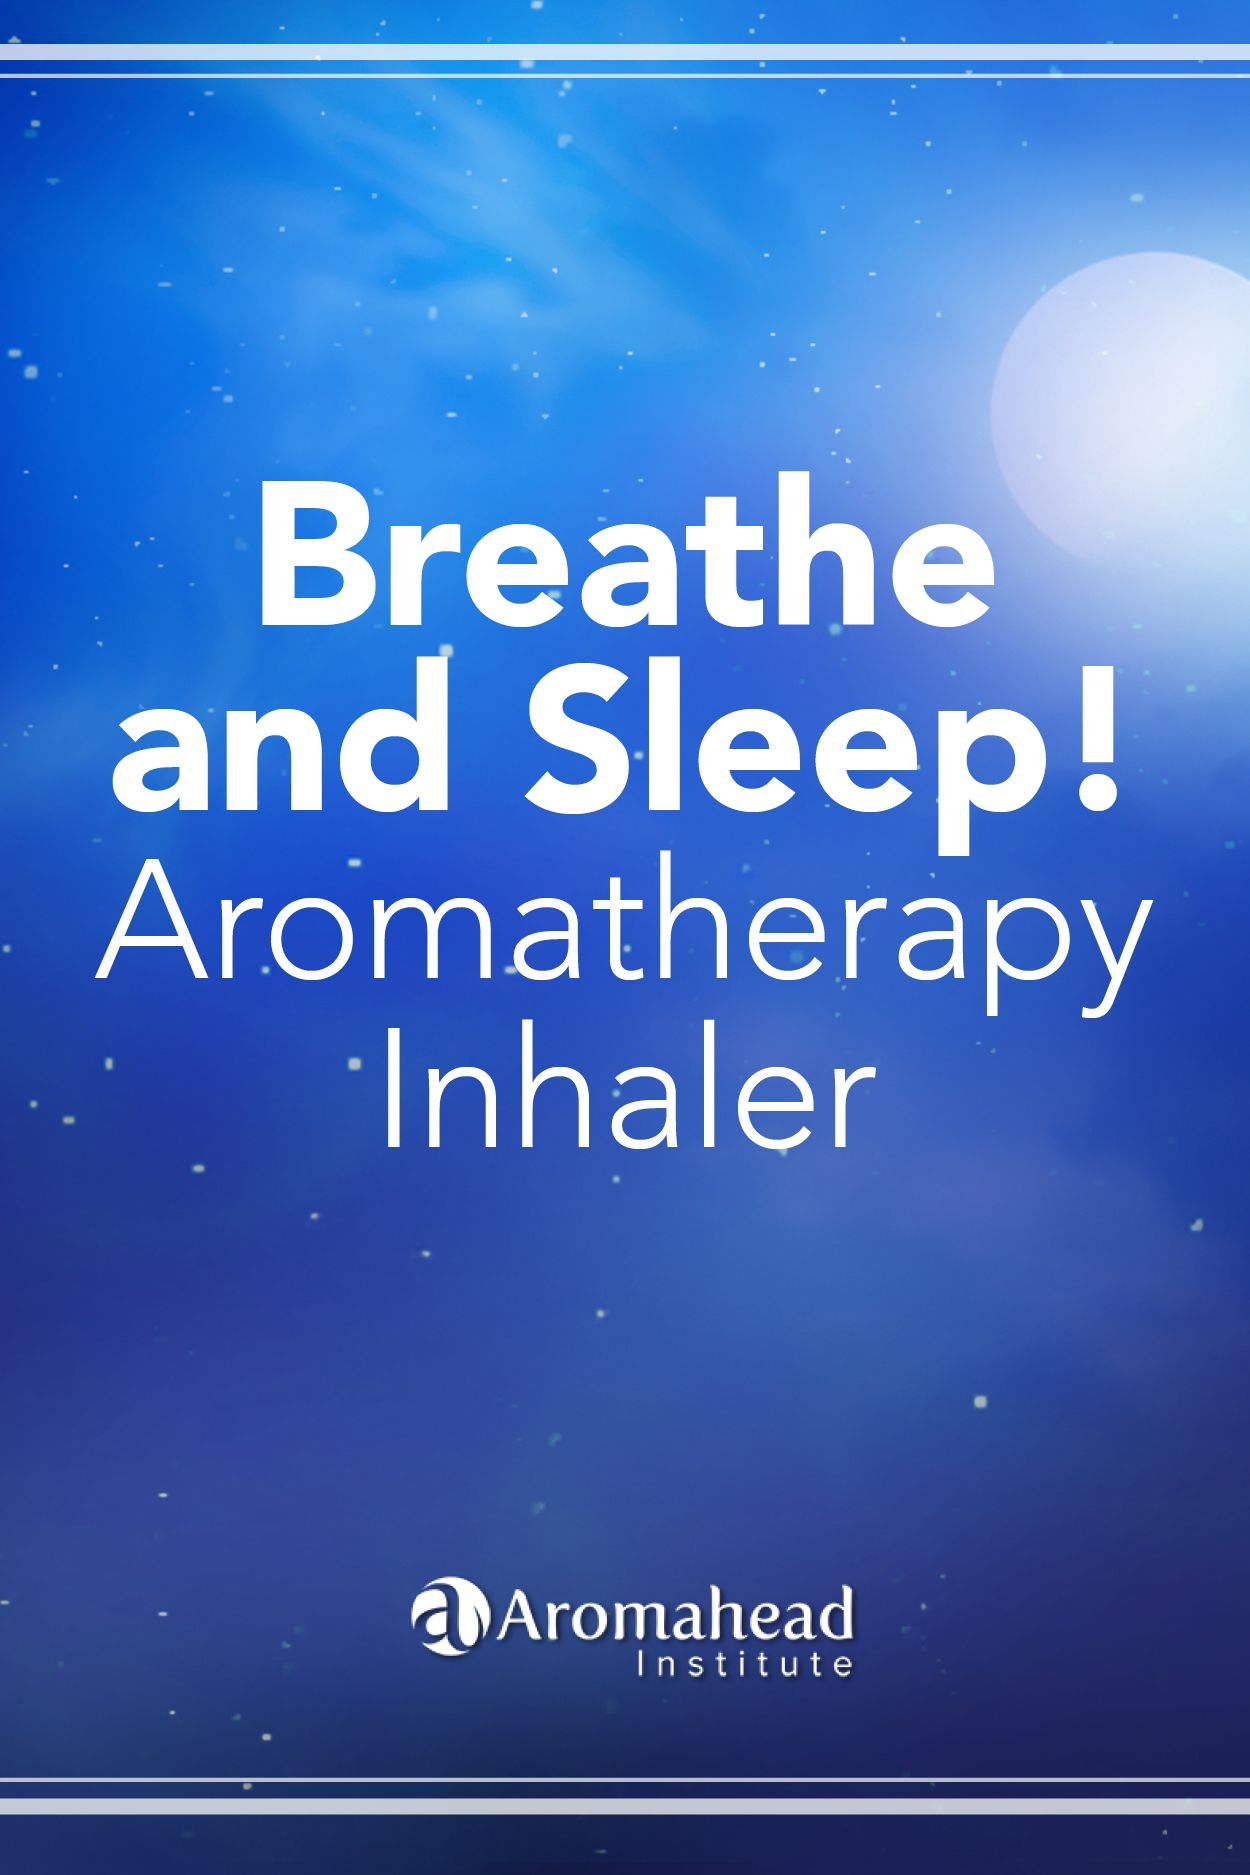 This Is An Aromatherapy Inhaler Recipe To Help You Breathe And